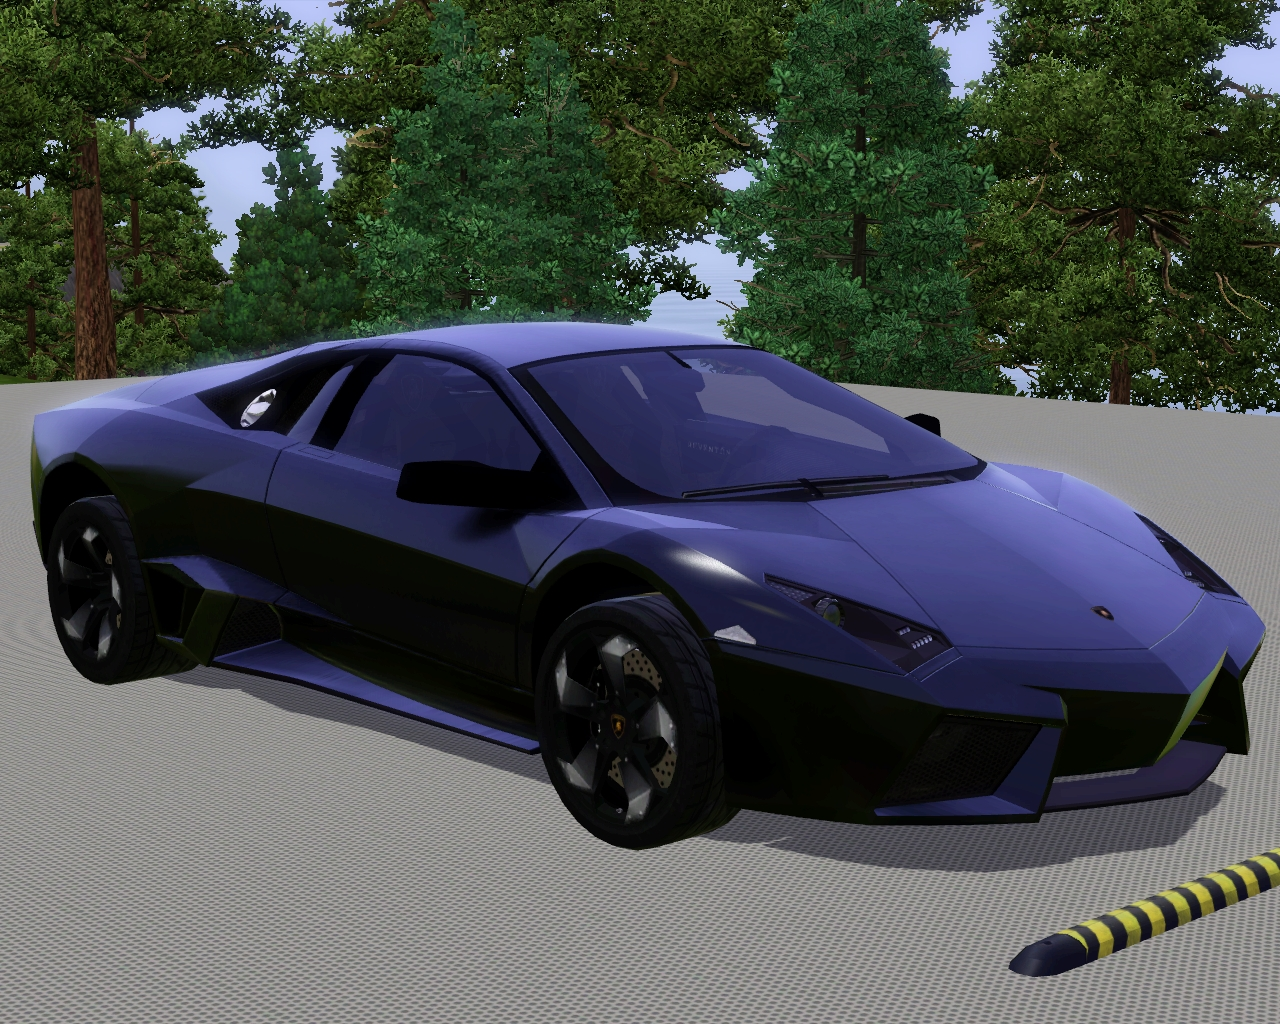 Sims 4 cars bing images